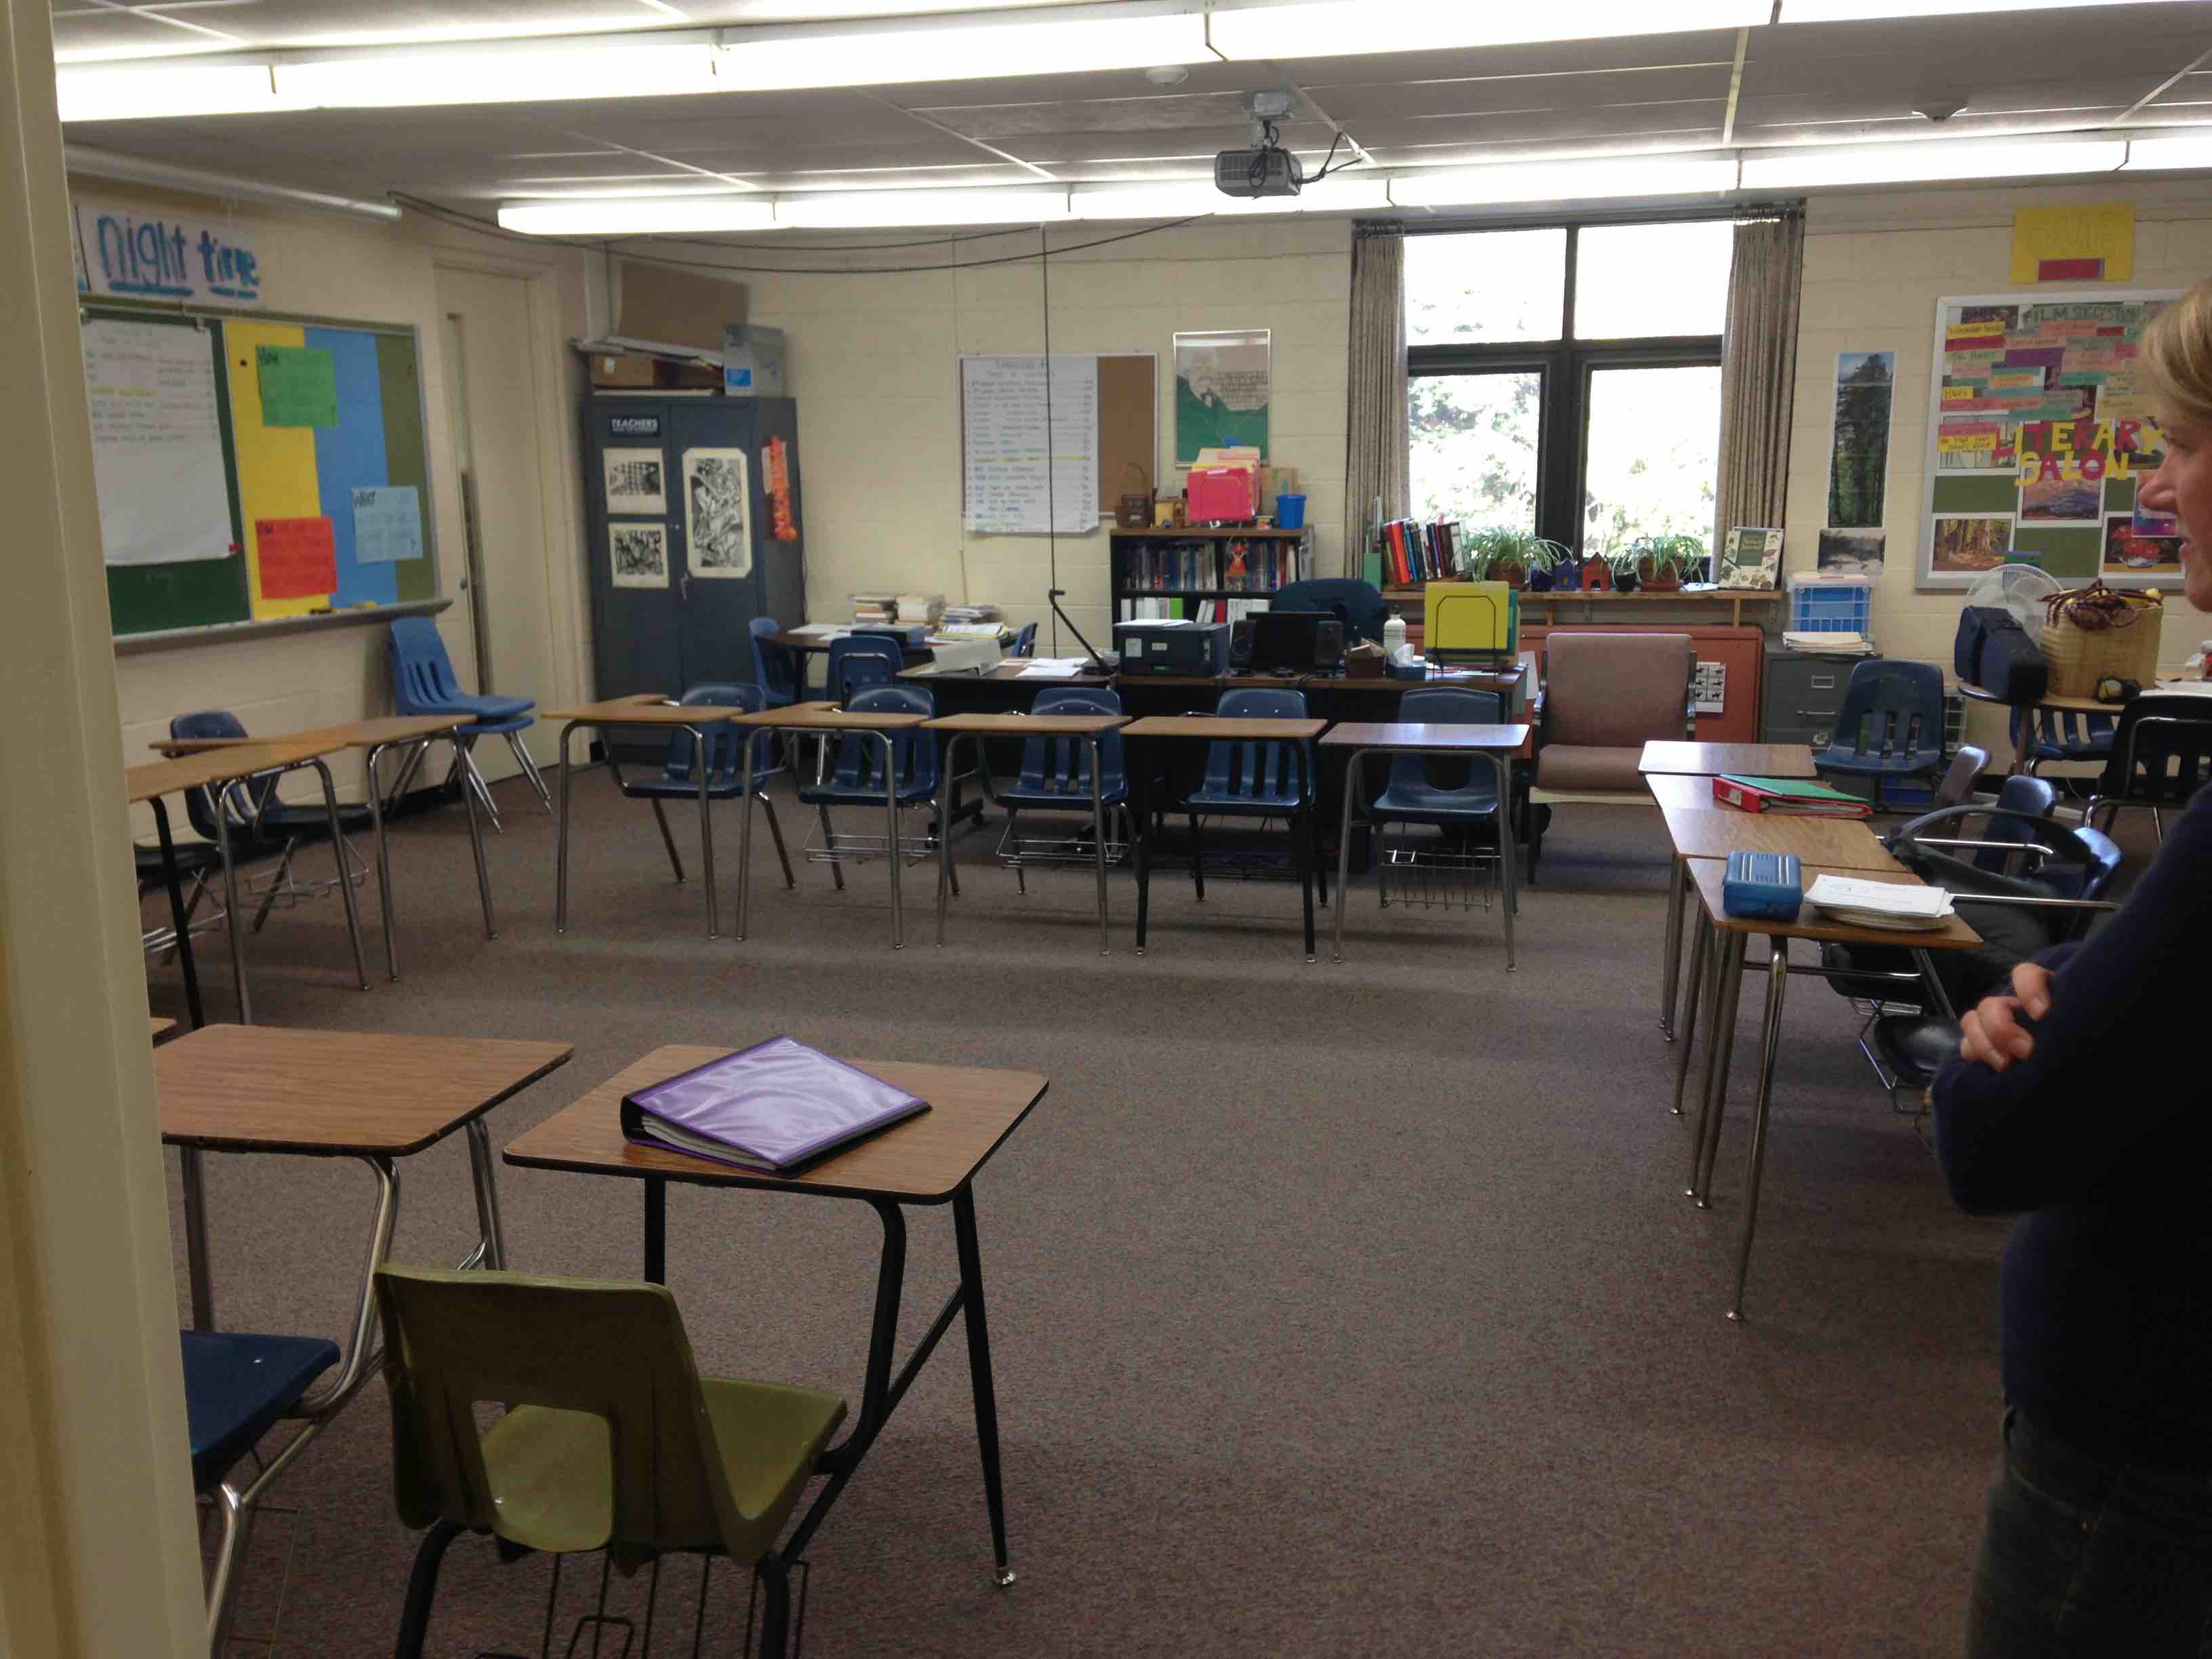 Horseshoe Classroom Design ~ Designing and re imagining the classroom space